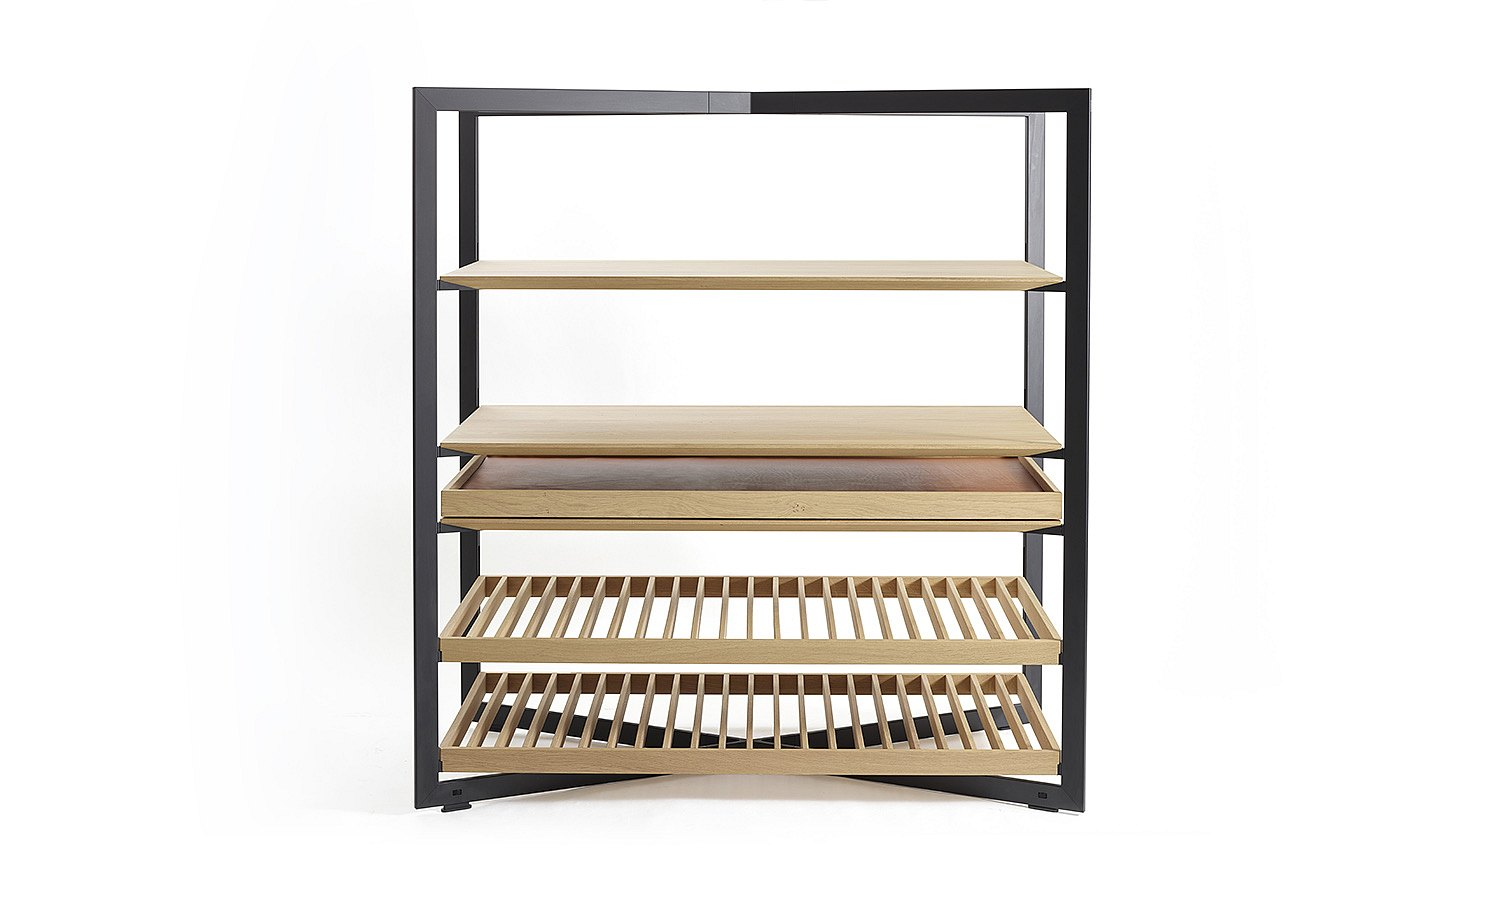 b Solitaire shelf unit showing shelf and tray options: frontal view